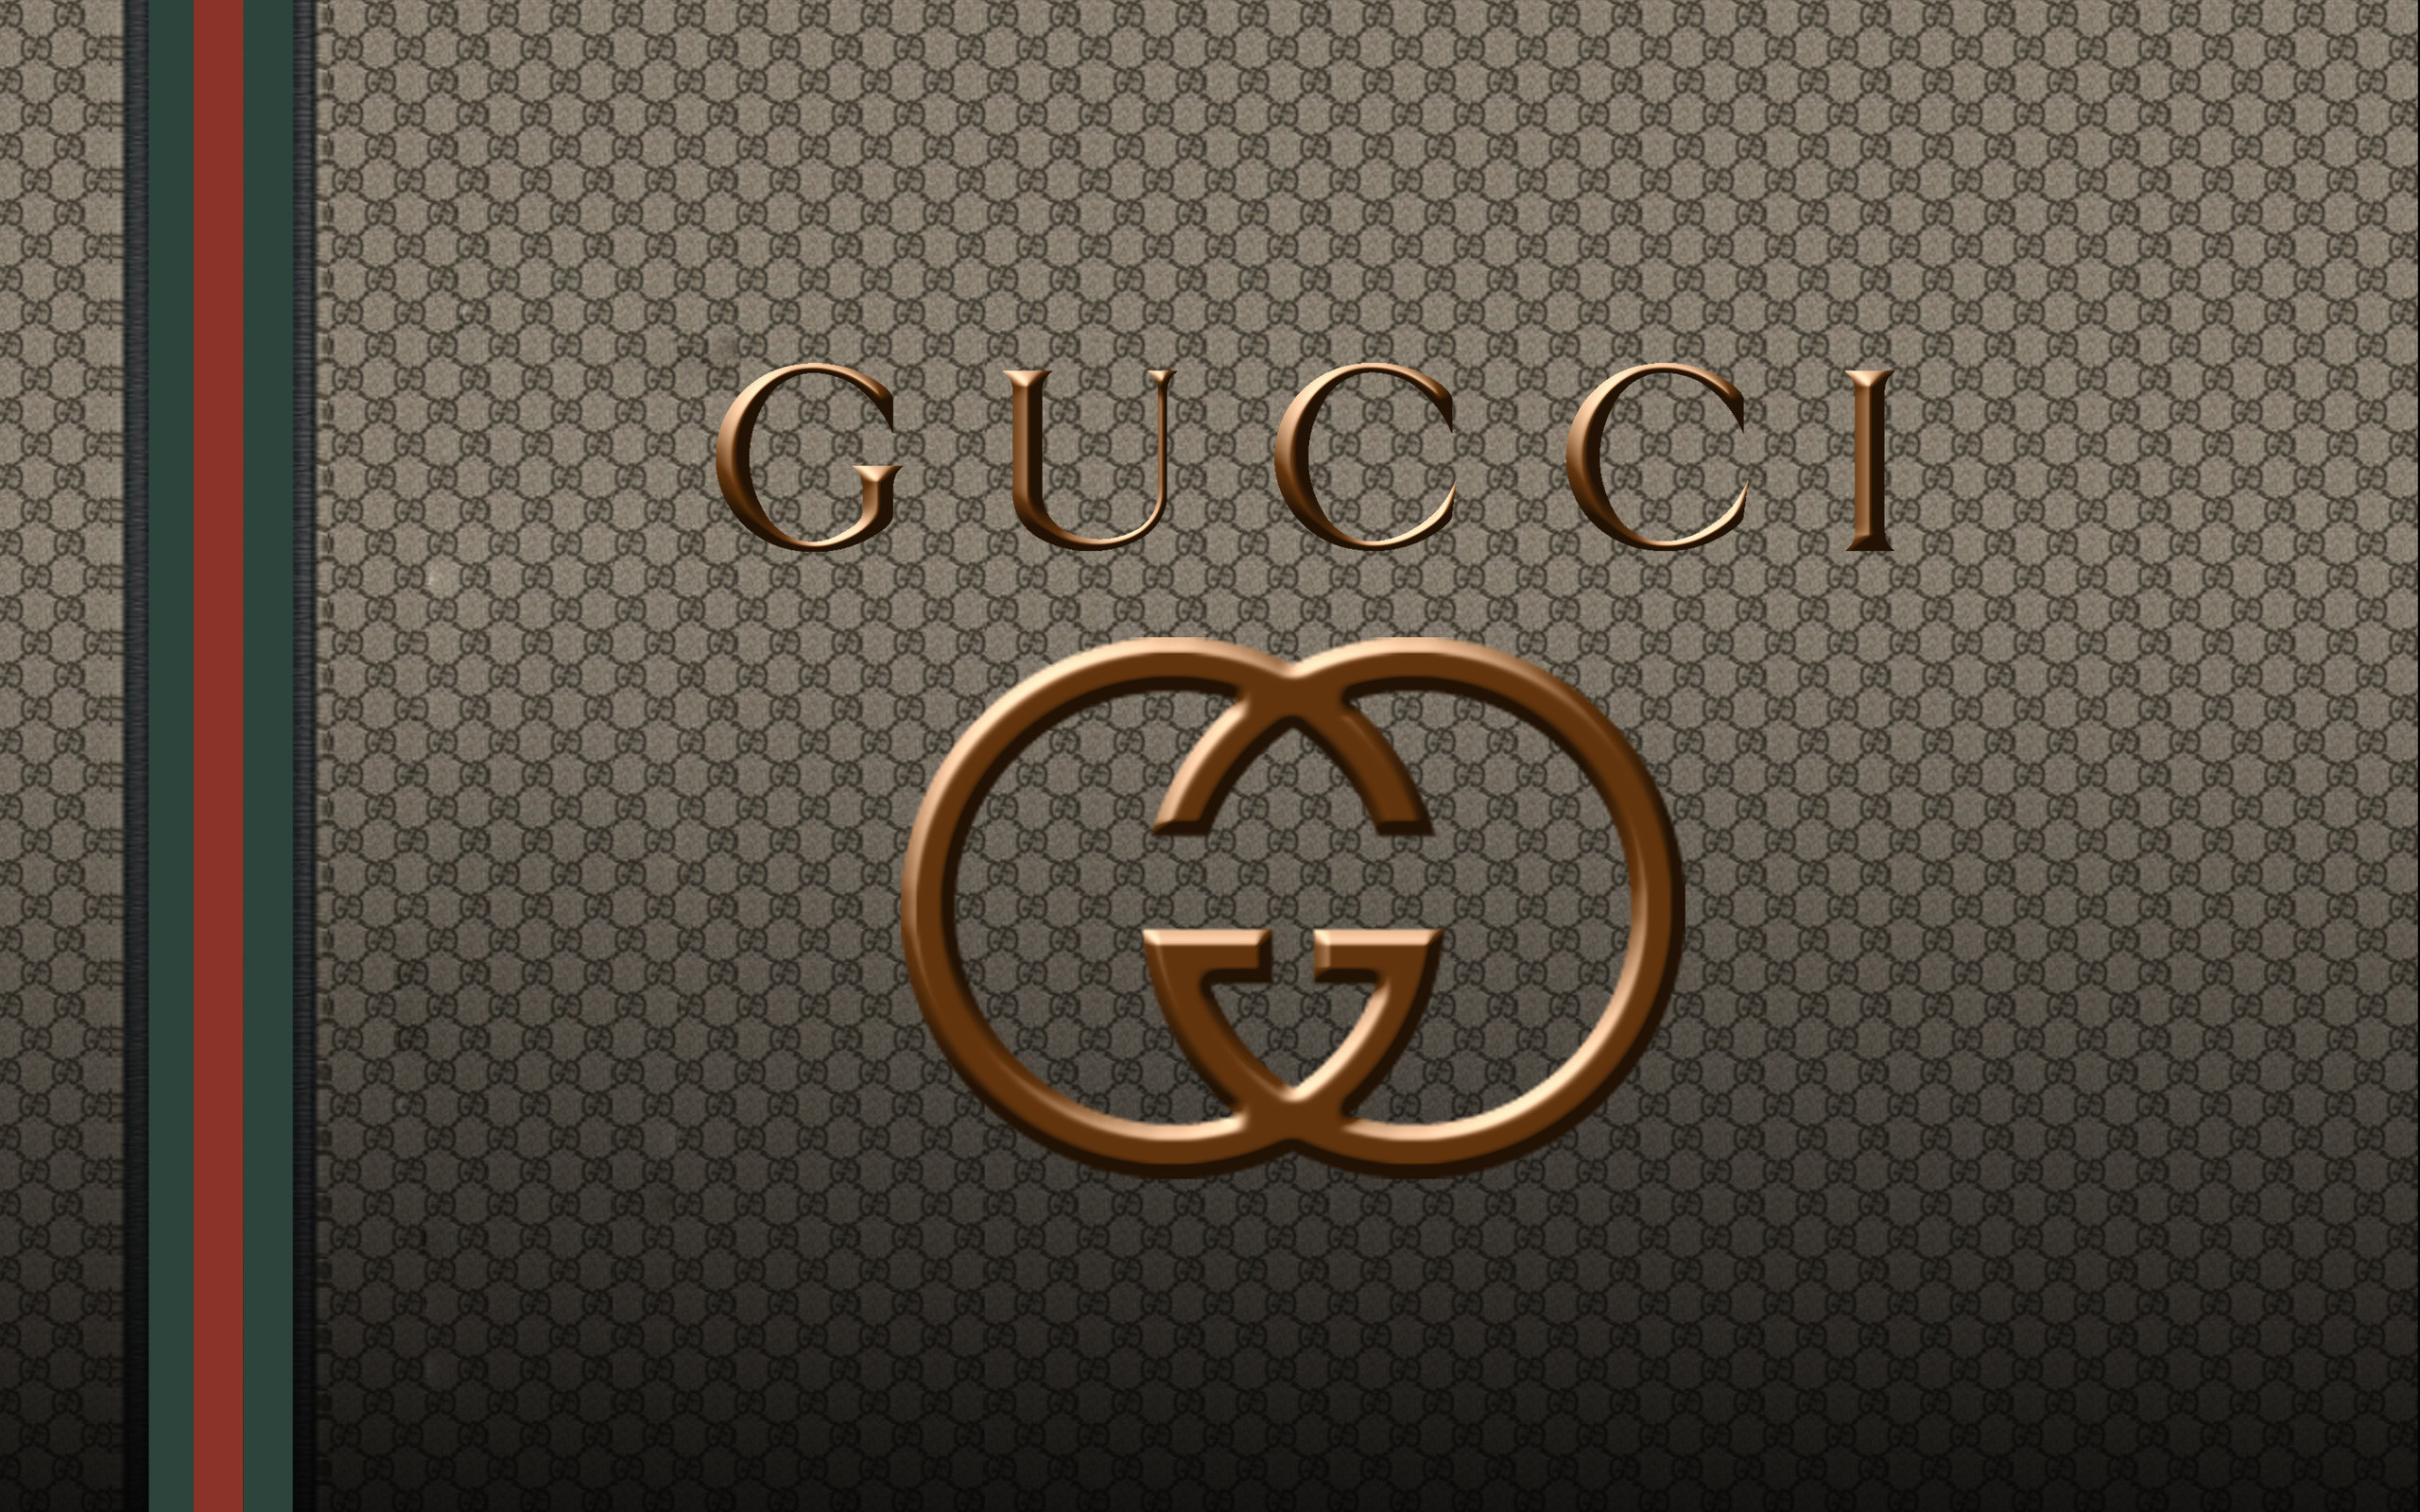 Gucci-logo-wallpapers-HD-pictures-images